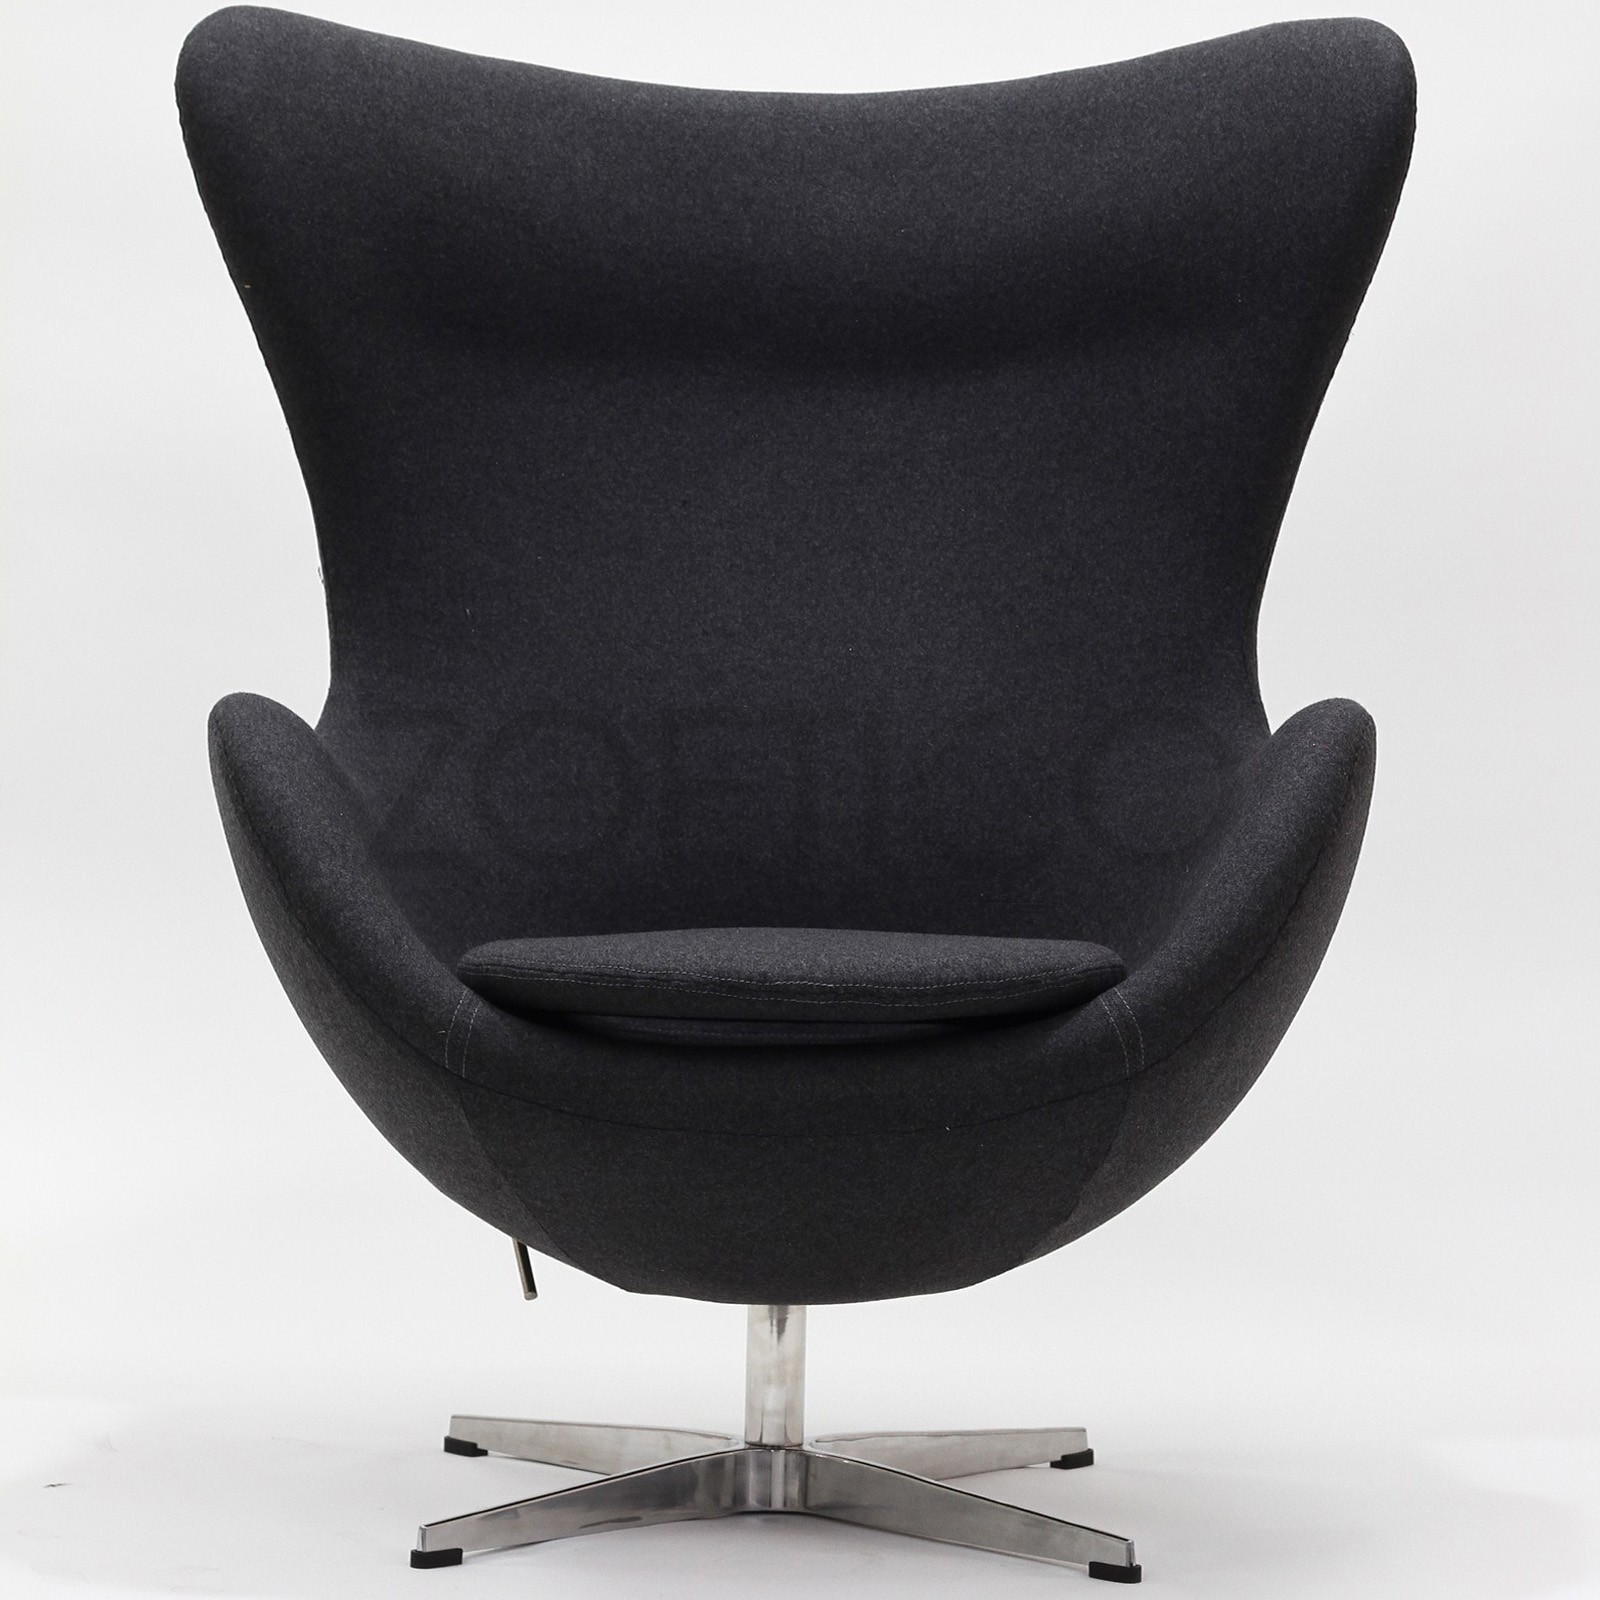 Image Arne Jacobsen Egg Chair 6533jpg Instituto Latino De Magia